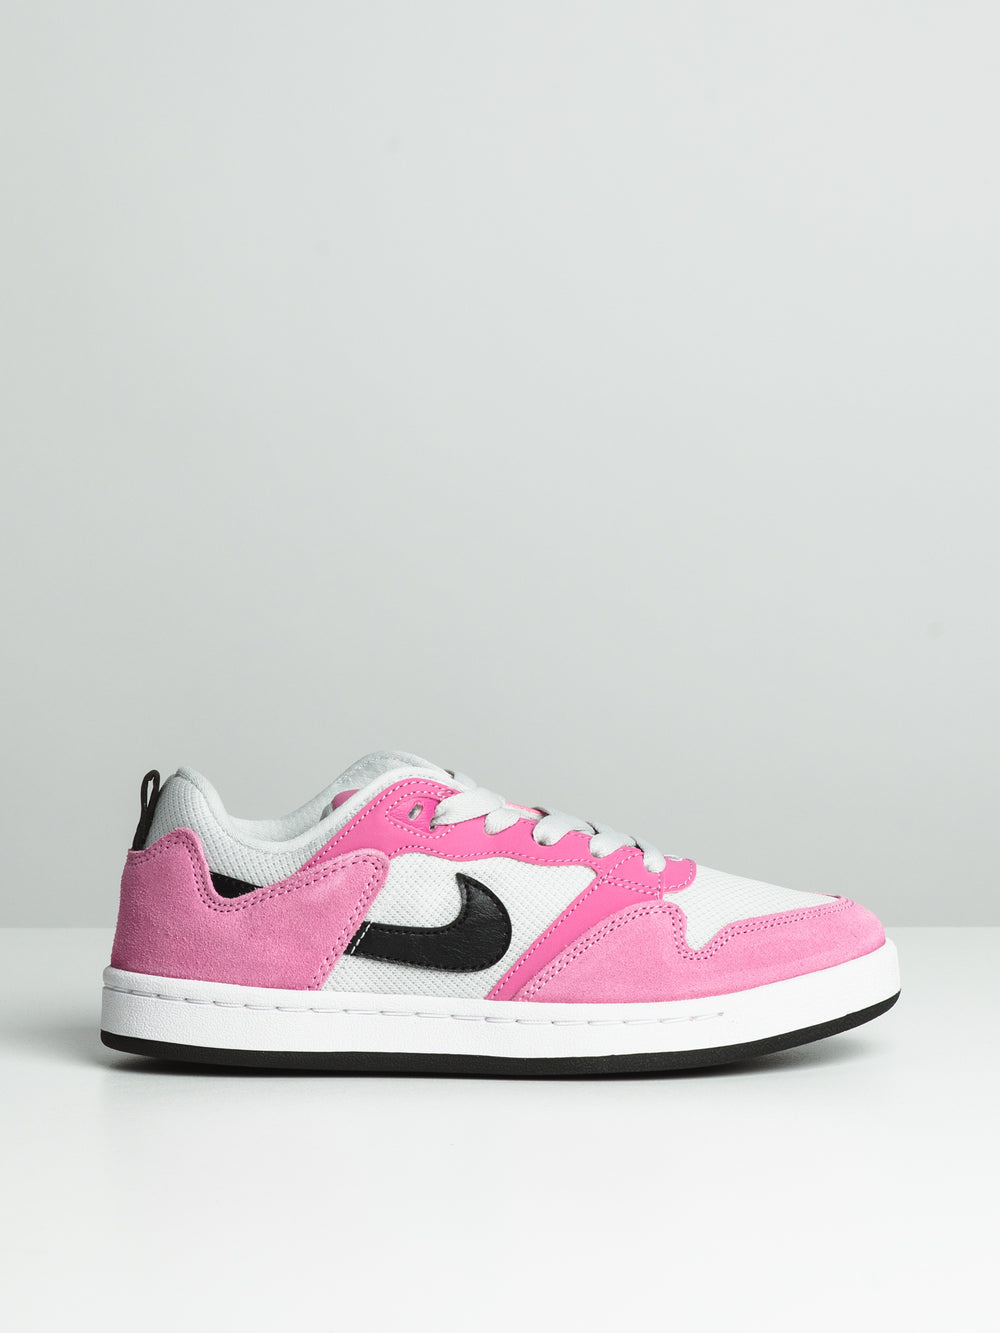 WOMENS SB ALLEYOOP - FLAMINGO/BLACK